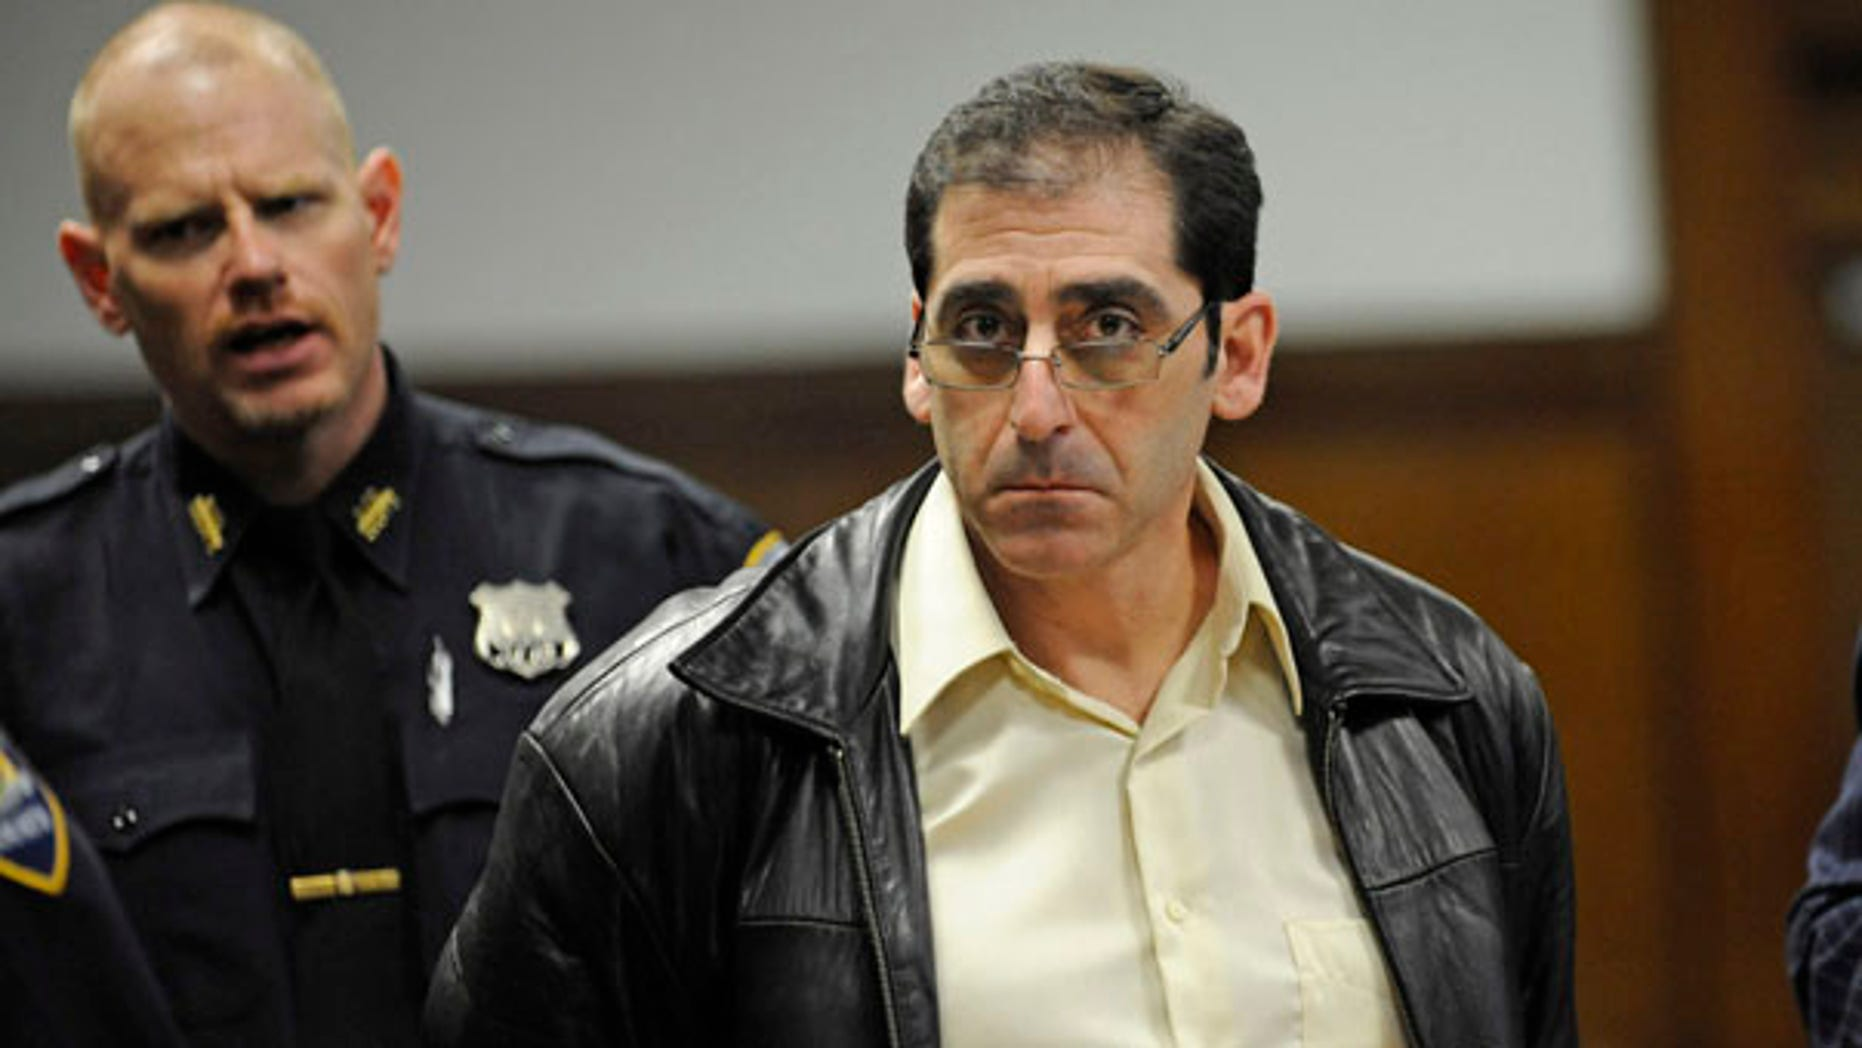 FILE: Construction crane rigger William Rapetti appears during his indictment in Manhattan criminal court in New York on manslaughter and other charges stemming from a March 15, 2008 crane collapse in Manhattan that killed seven people and injured two dozen. A judge acquitted Rapetti of all charges.